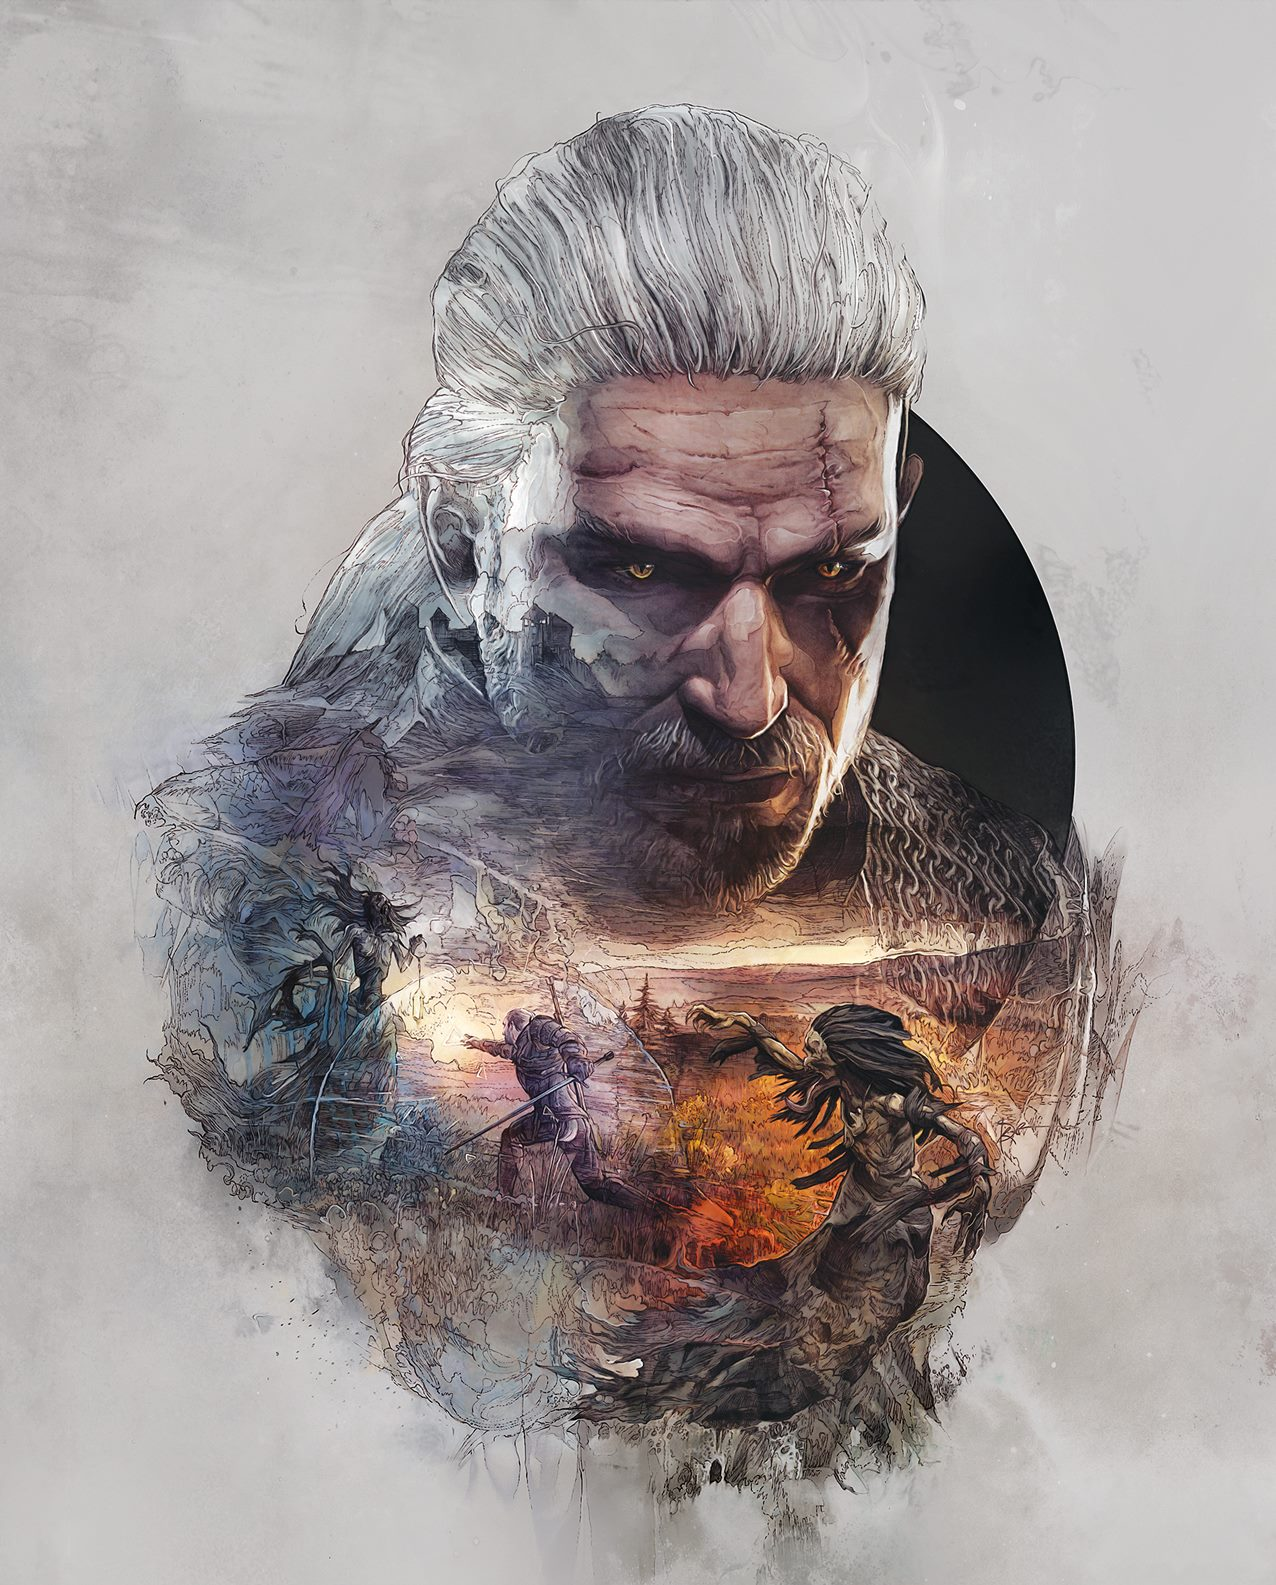 The Witcher 3 No Man's Land Front Cover Art